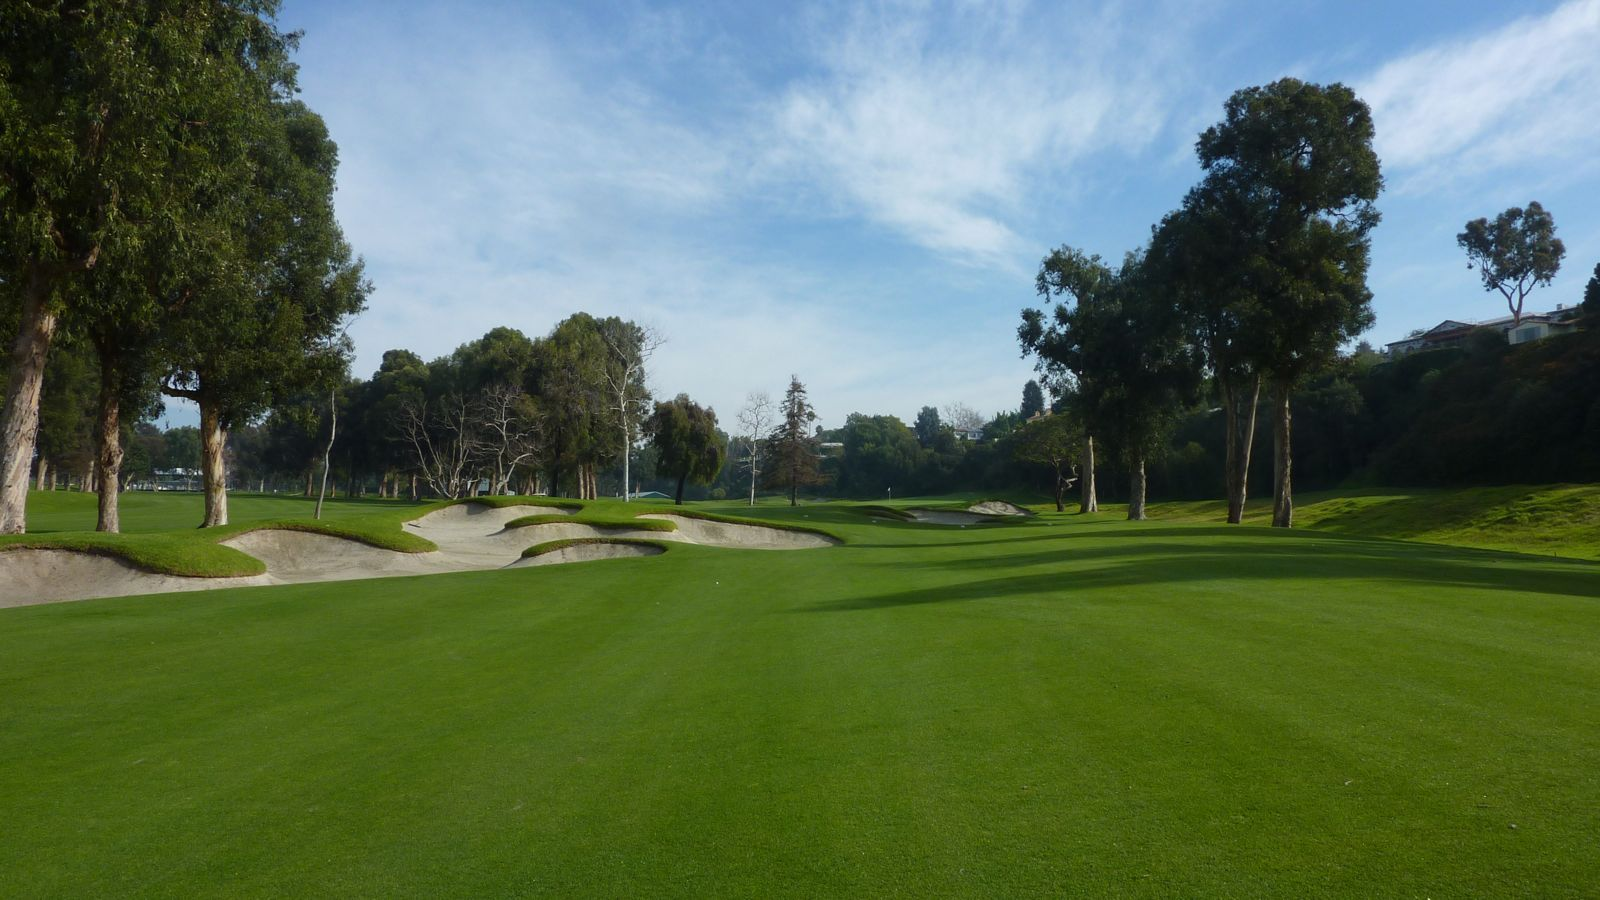 Riviera Country Club, CA. Home of the Northern Trust Open on the PGA Tour.